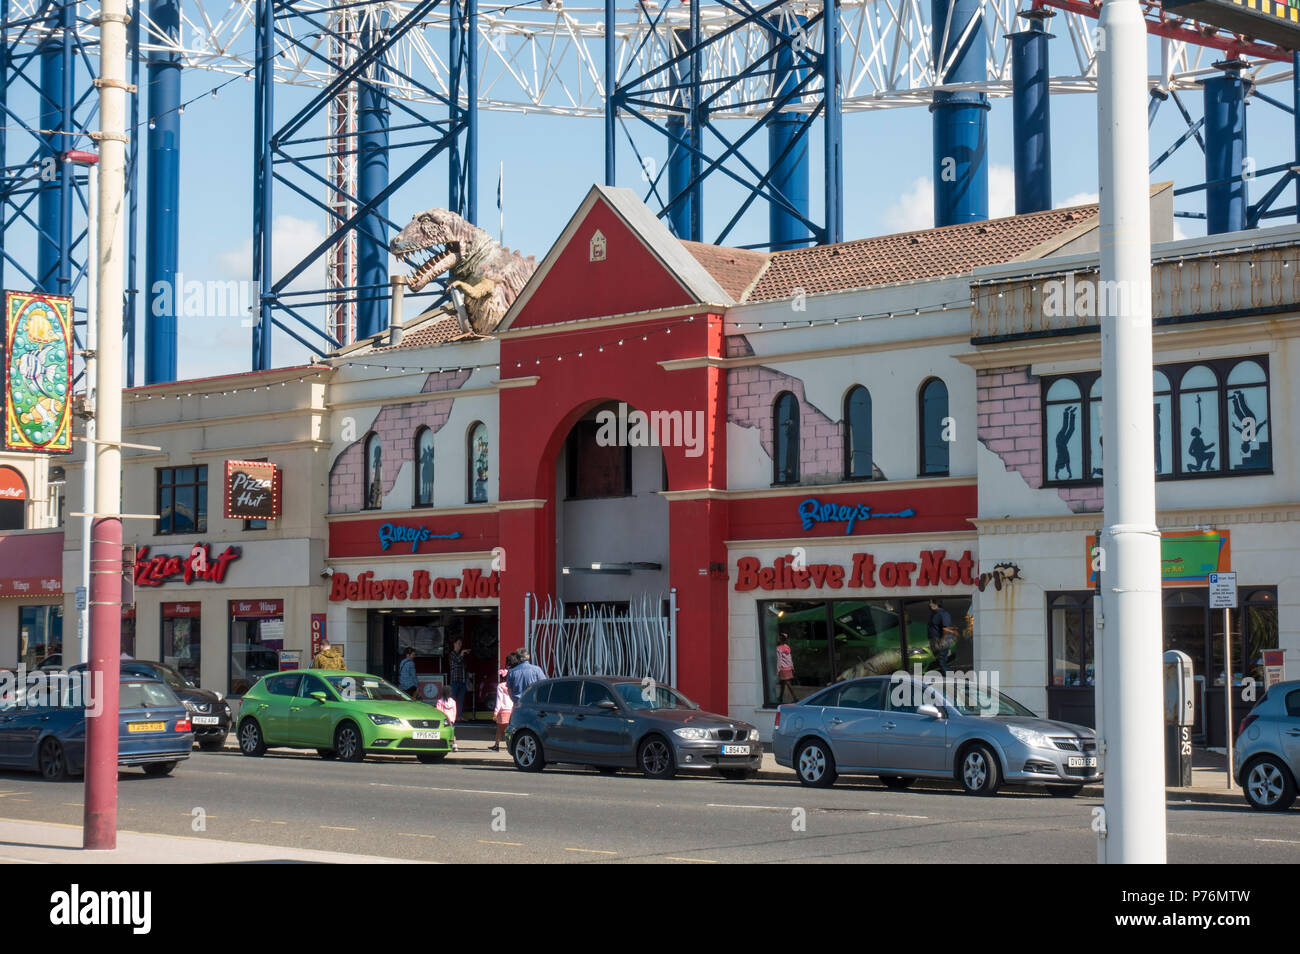 Ripleys Believe it or Not in Blackpool - Stock Image